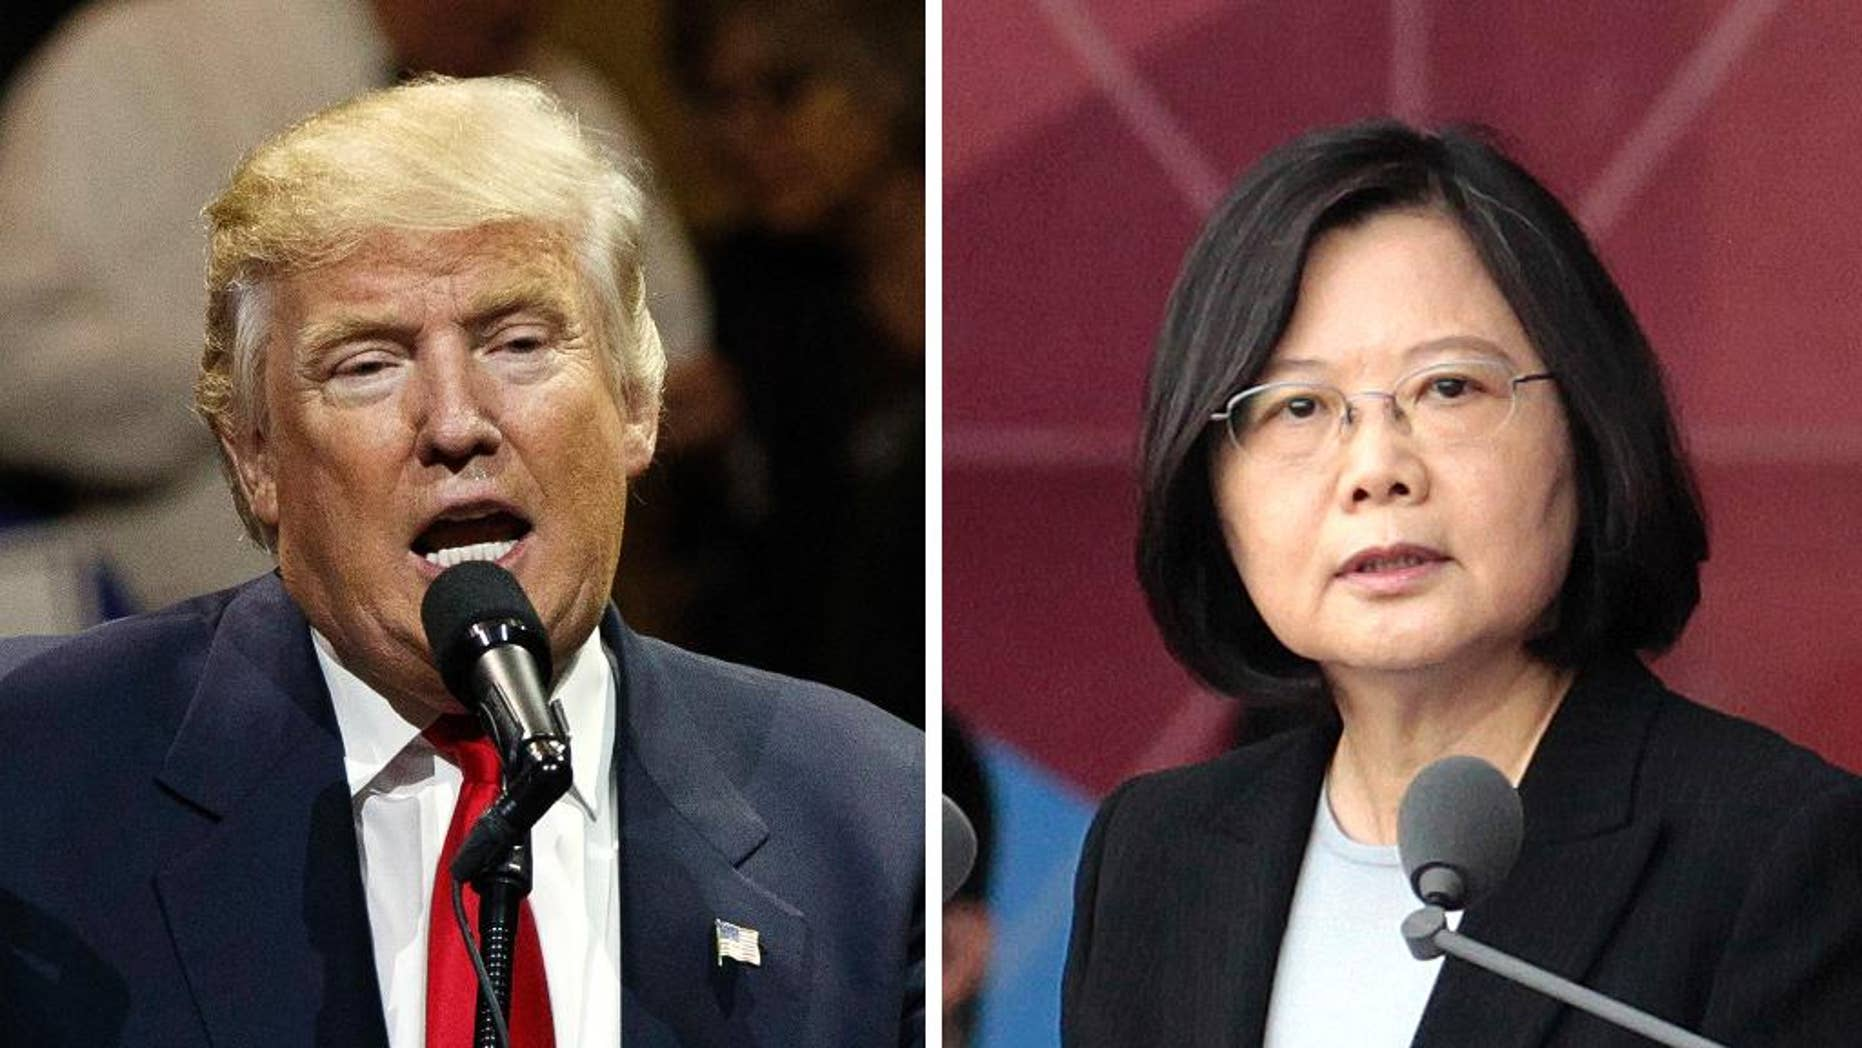 """FILE - This combination of two photos shows U.S. President-elect Donald Trump, left, speaking during a """"USA Thank You"""" tour event in Cincinatti Thursday, Dec. 1, 2016, and Taiwan's President Tsai Ing-wen, delivering a speech during National Day celebrations in Taipei, Taiwan, Monday, Oct. 10, 2016. Trump spoke Friday, Dec. 2, with Tsai, a move that will be sure to anger China. (AP Photo/Evan Vucci, Chinag Ying-ying, File)"""